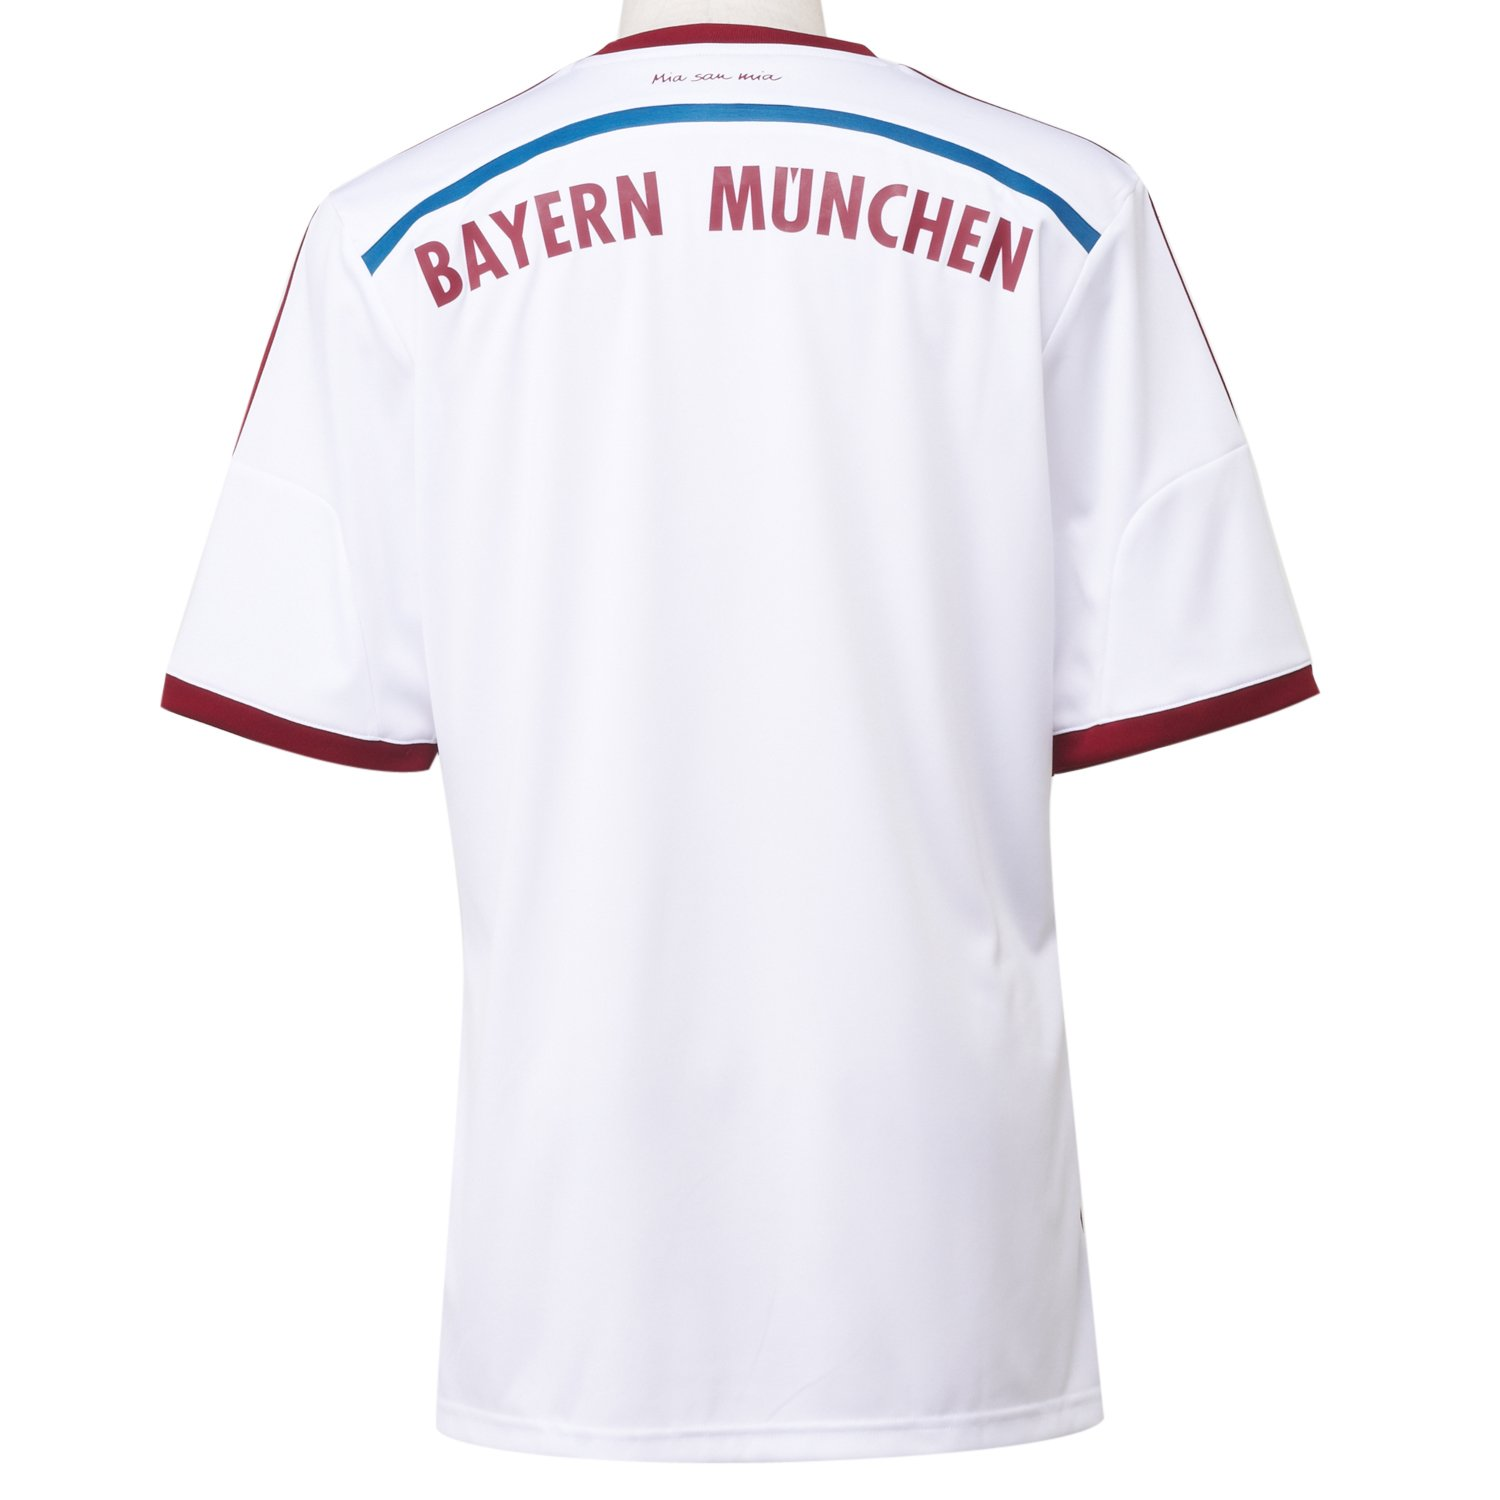 Amazon.com : 2014-15 Bayern Munich Adidas Away Football Shirt : Sports & Outdoors